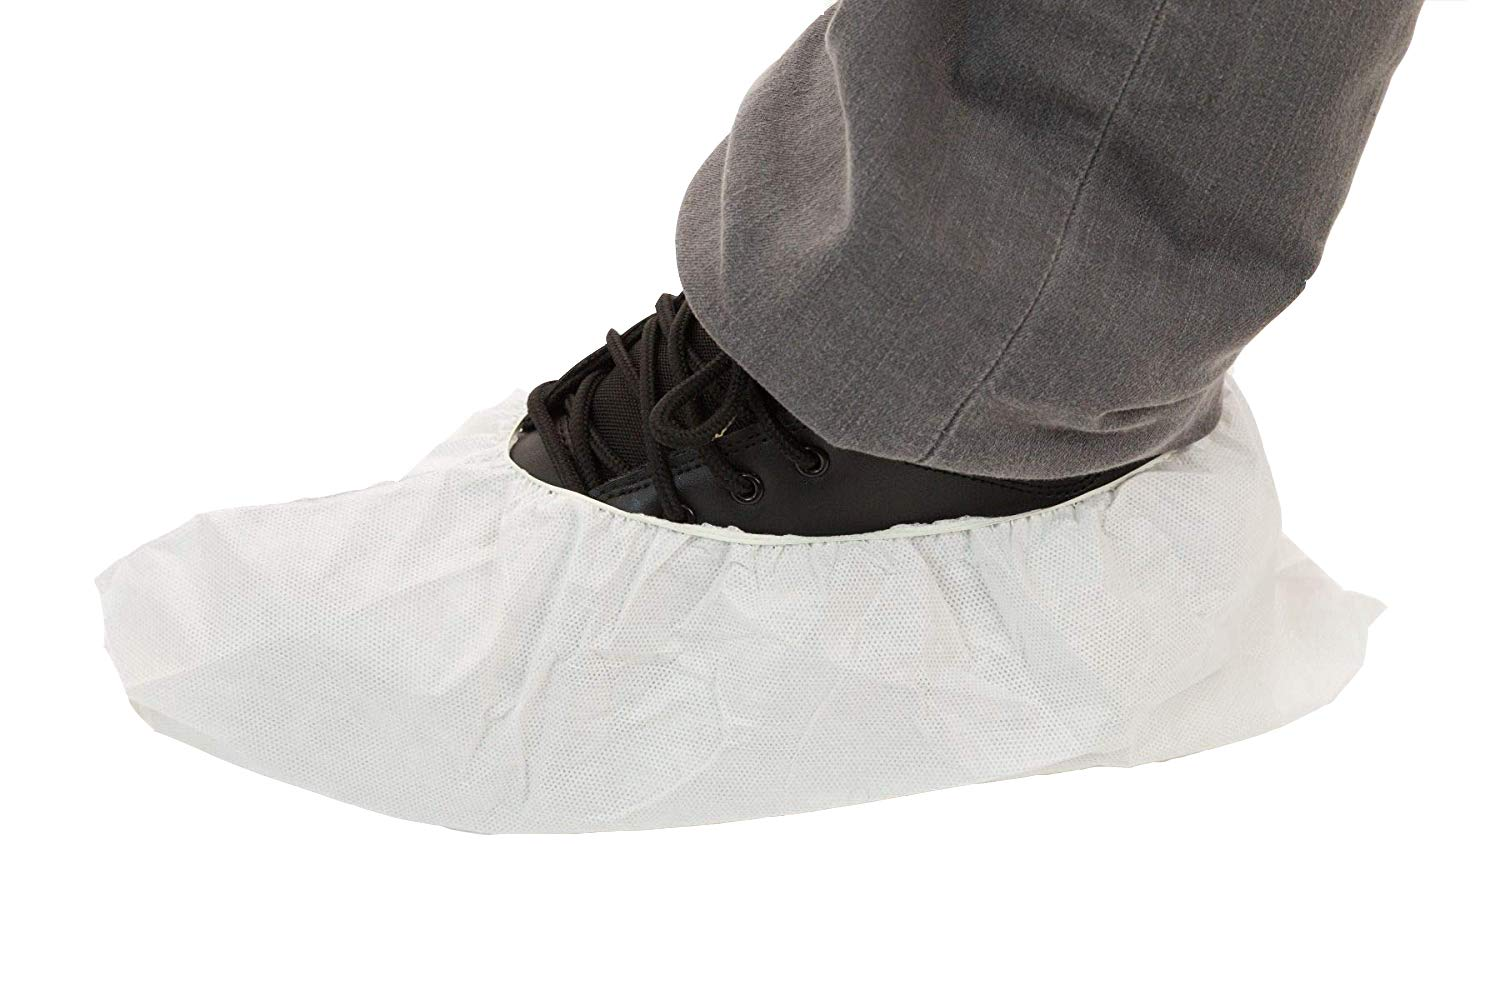 Body Filter 95+ Disposable Shoe Covers (White) | Breathable Cool Material - Protective Body Suit for Dust, Spray Paint, Insulation, and More (Case of 200) by BODY FILTER 95+ (Image #1)